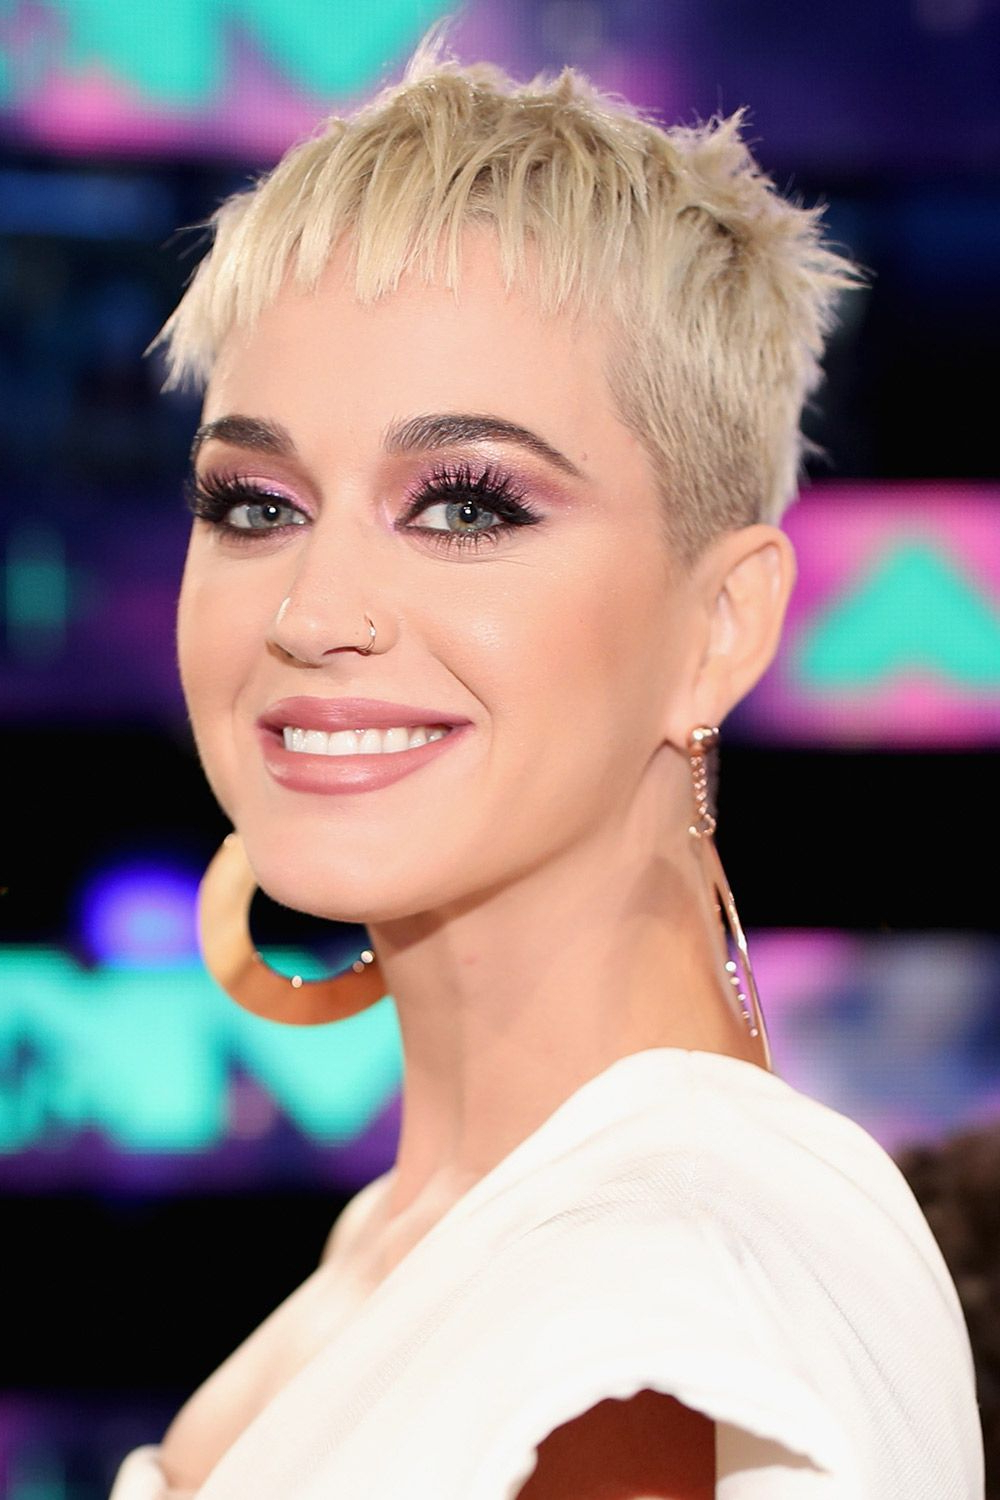 65 Best Short Hairstyles, Haircuts, And Short Hair Ideas For 2018 Inside Short Haircuts For Celebrities (Gallery 5 of 25)